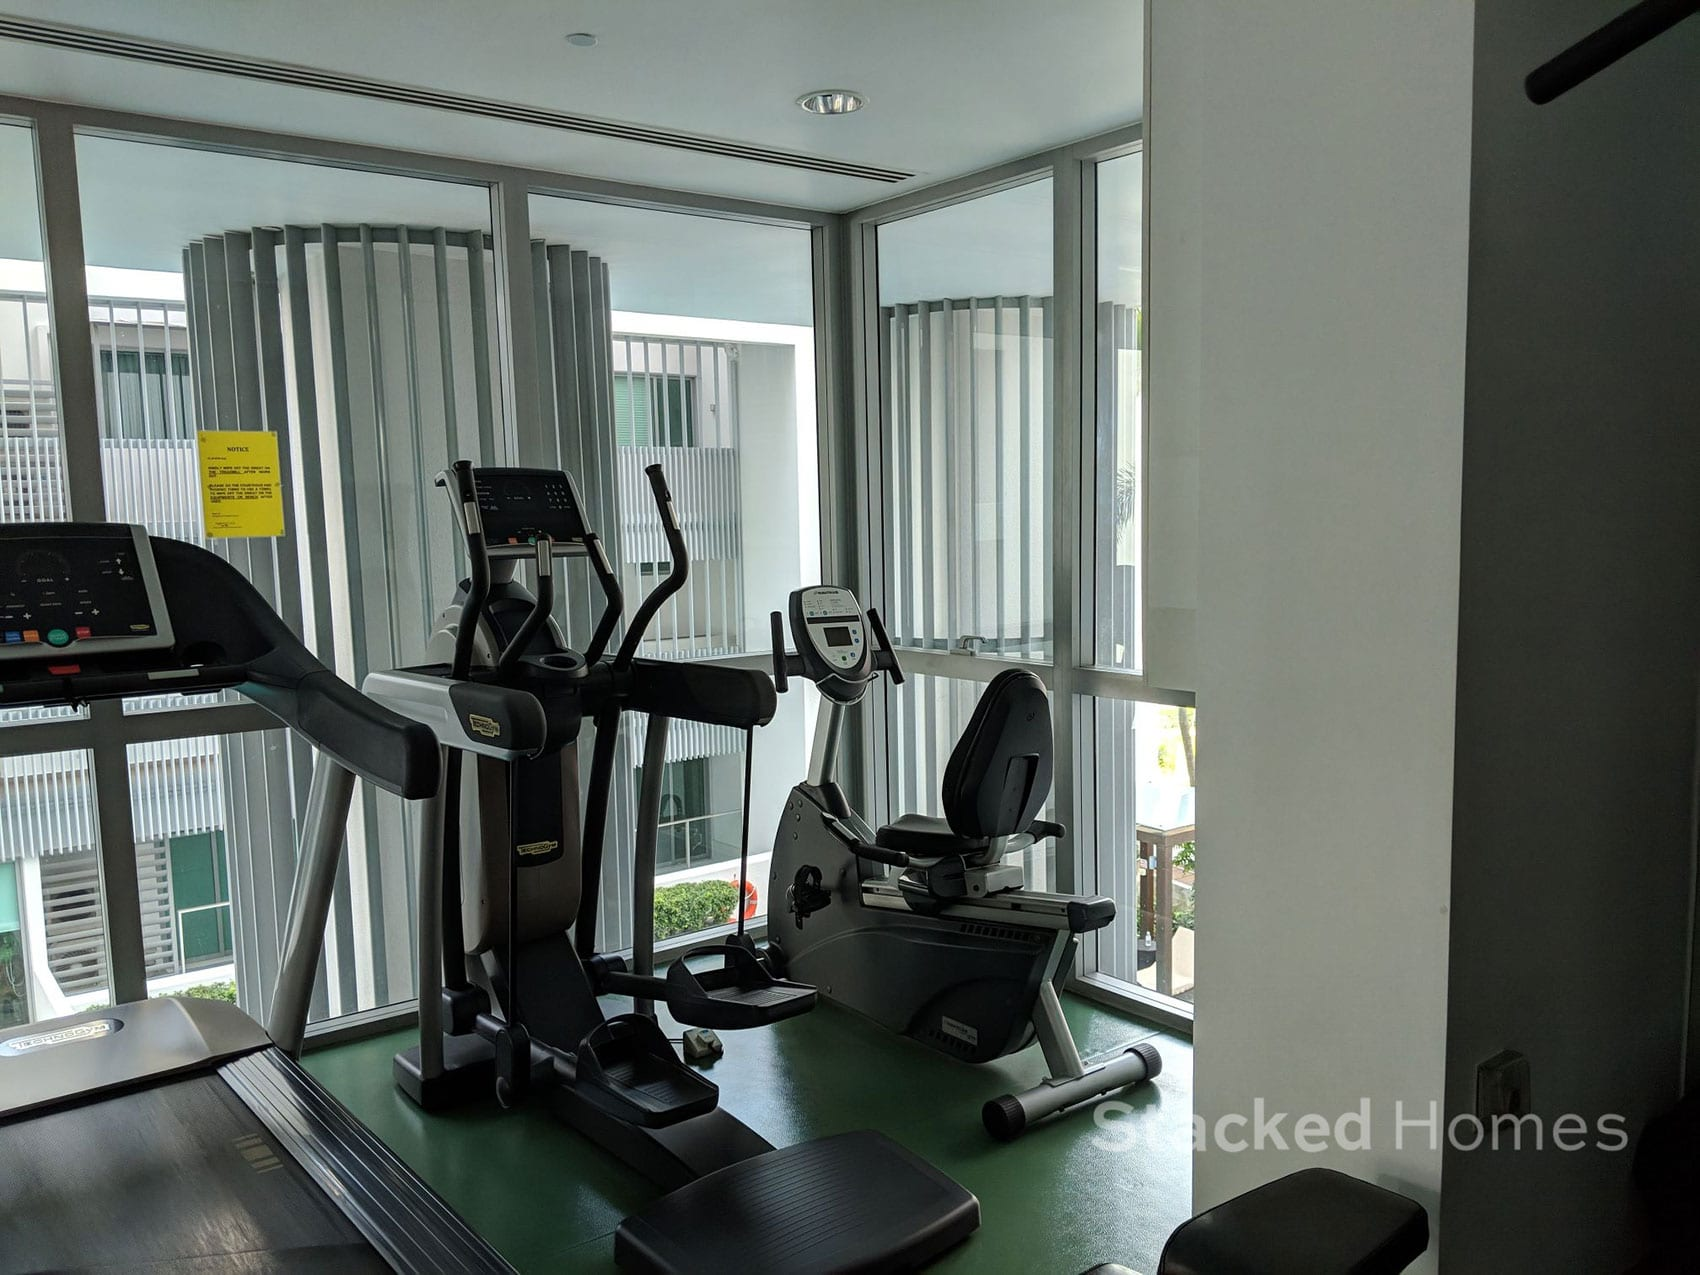 regency suites gym